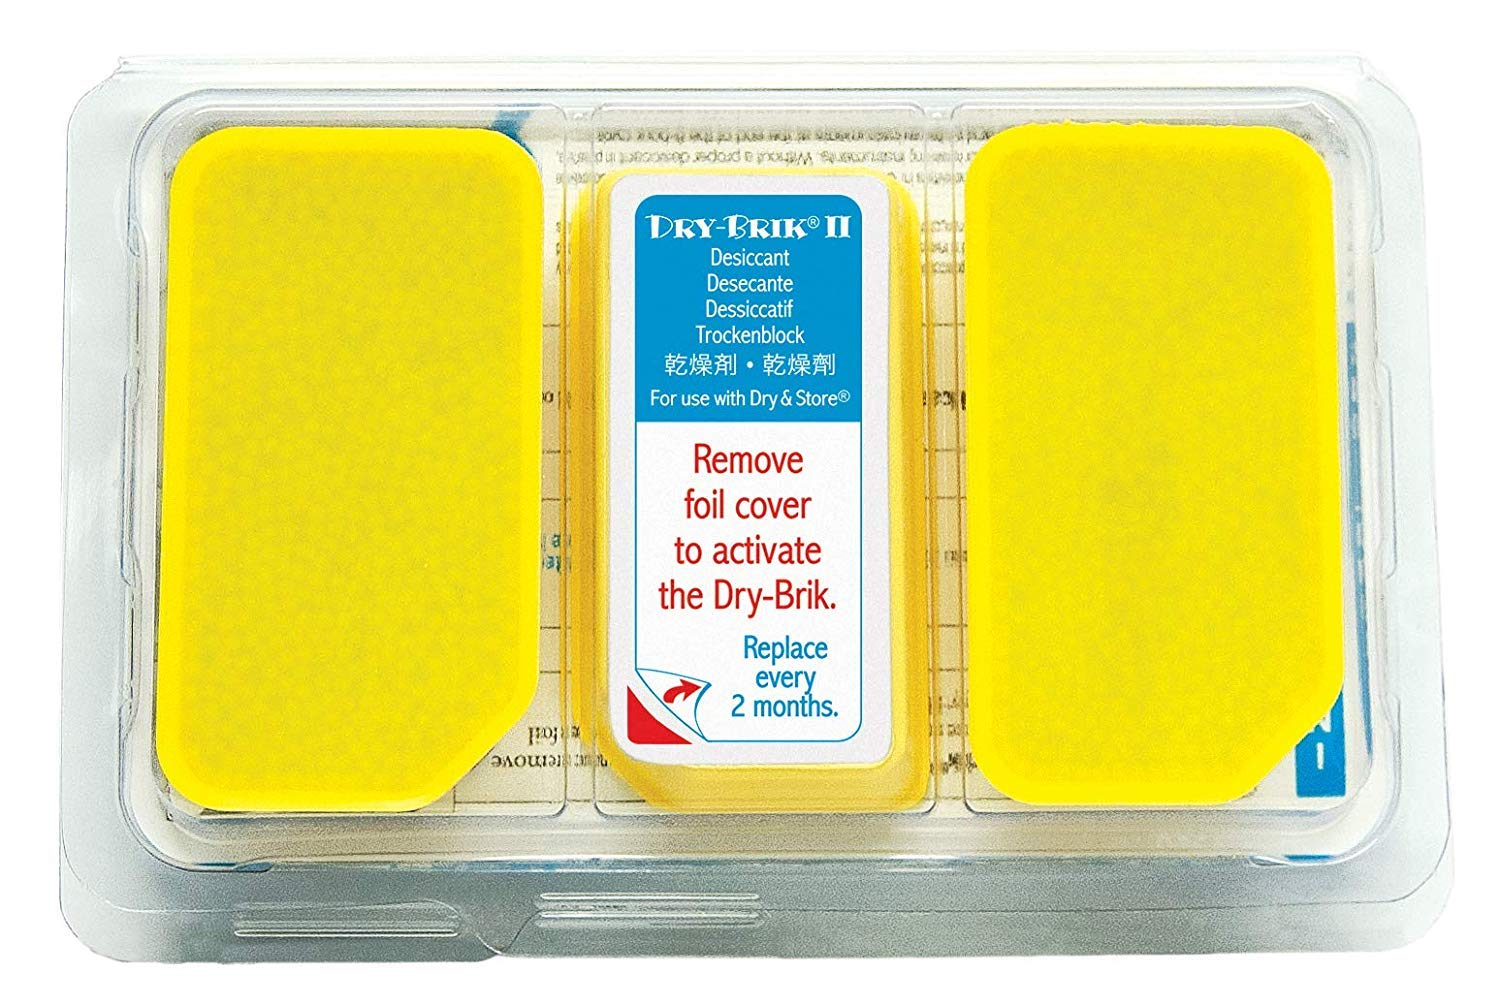 Dry-Brik II Desiccant Blocks - 6 Blocks (2 Packs of 3 Blocks)| Replacement Moisture Absorbing Block for the Global II and Zephyr by Dry & Store | Hearing Device Dehumidifiers (Limited Edition)